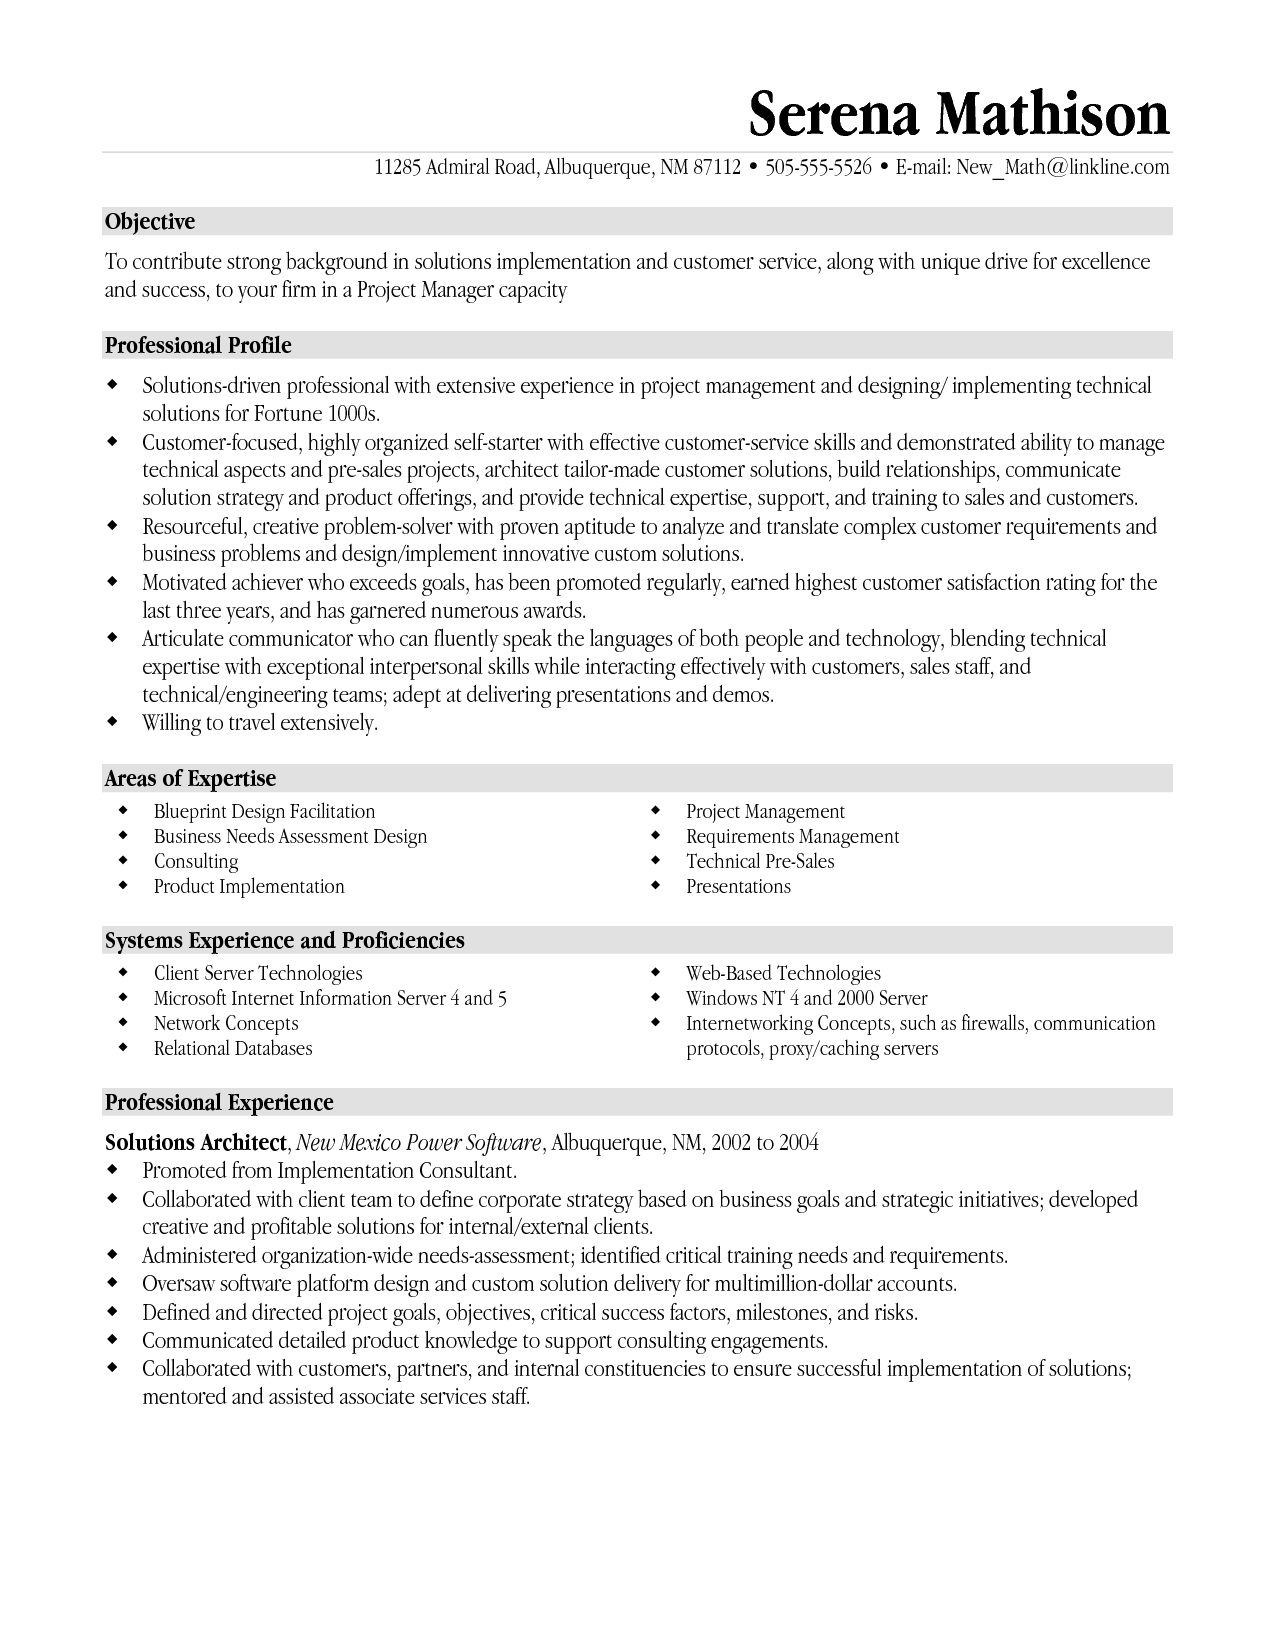 Resume templates project manager project management resume resume templates project manager project management resume malvernweather Image collections